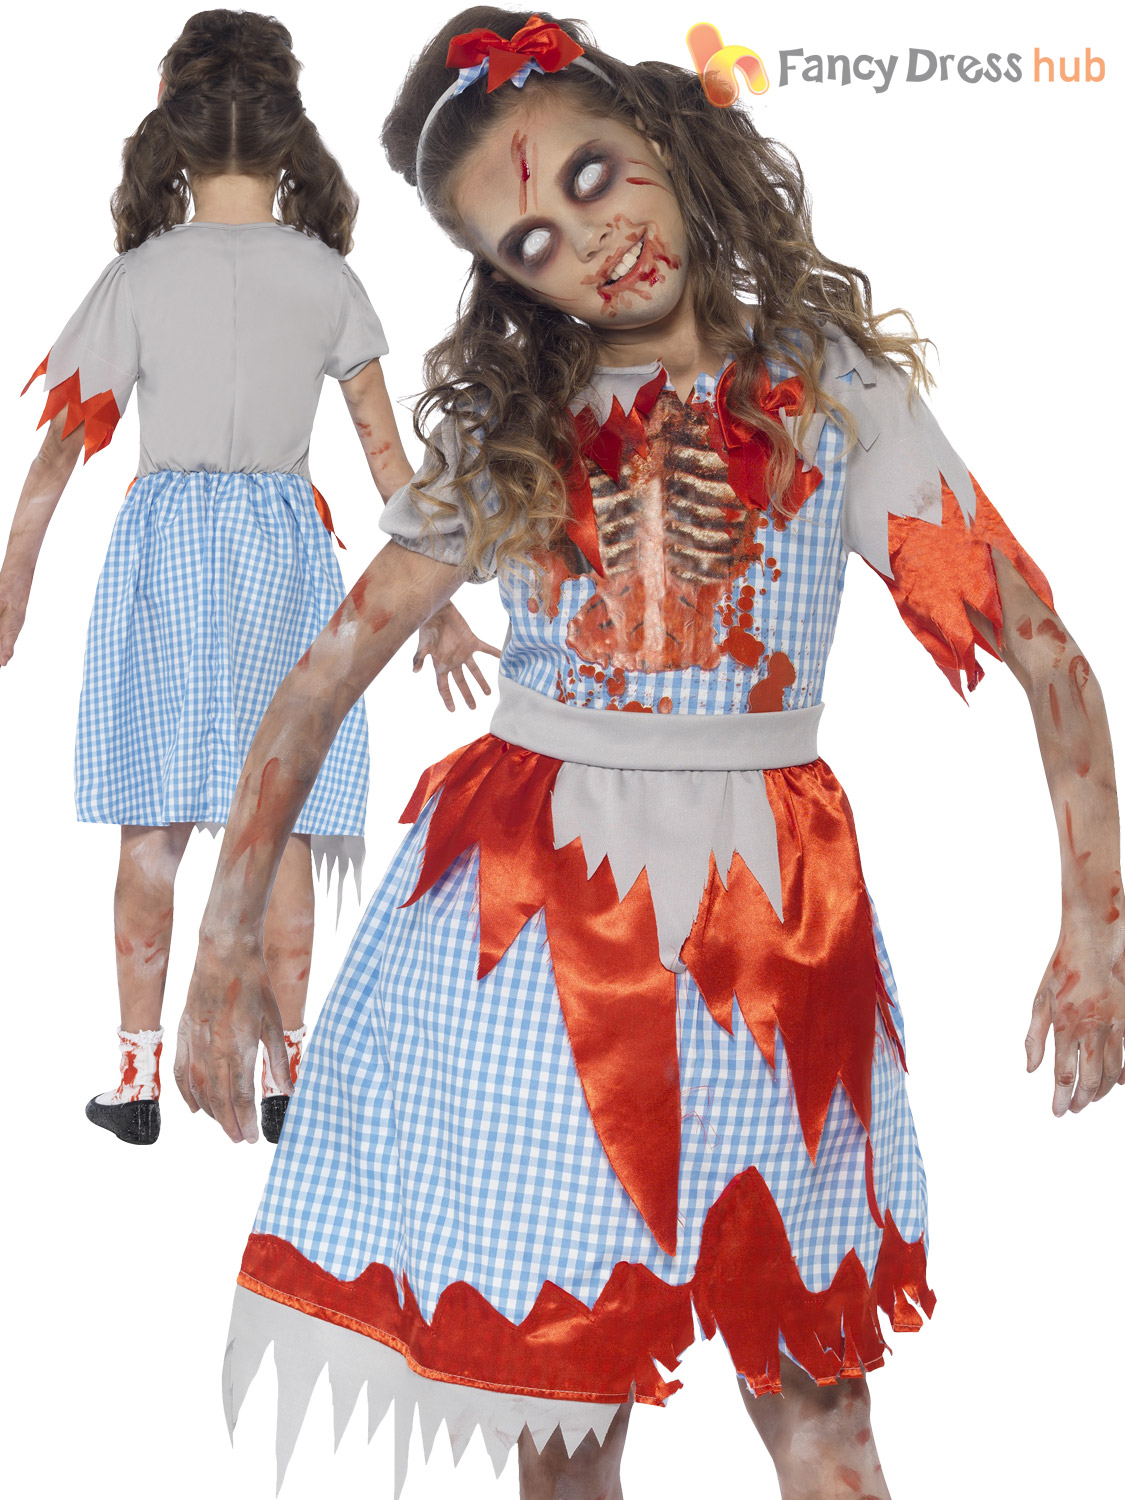 age 4 12 girls zombie princess fairytale costume